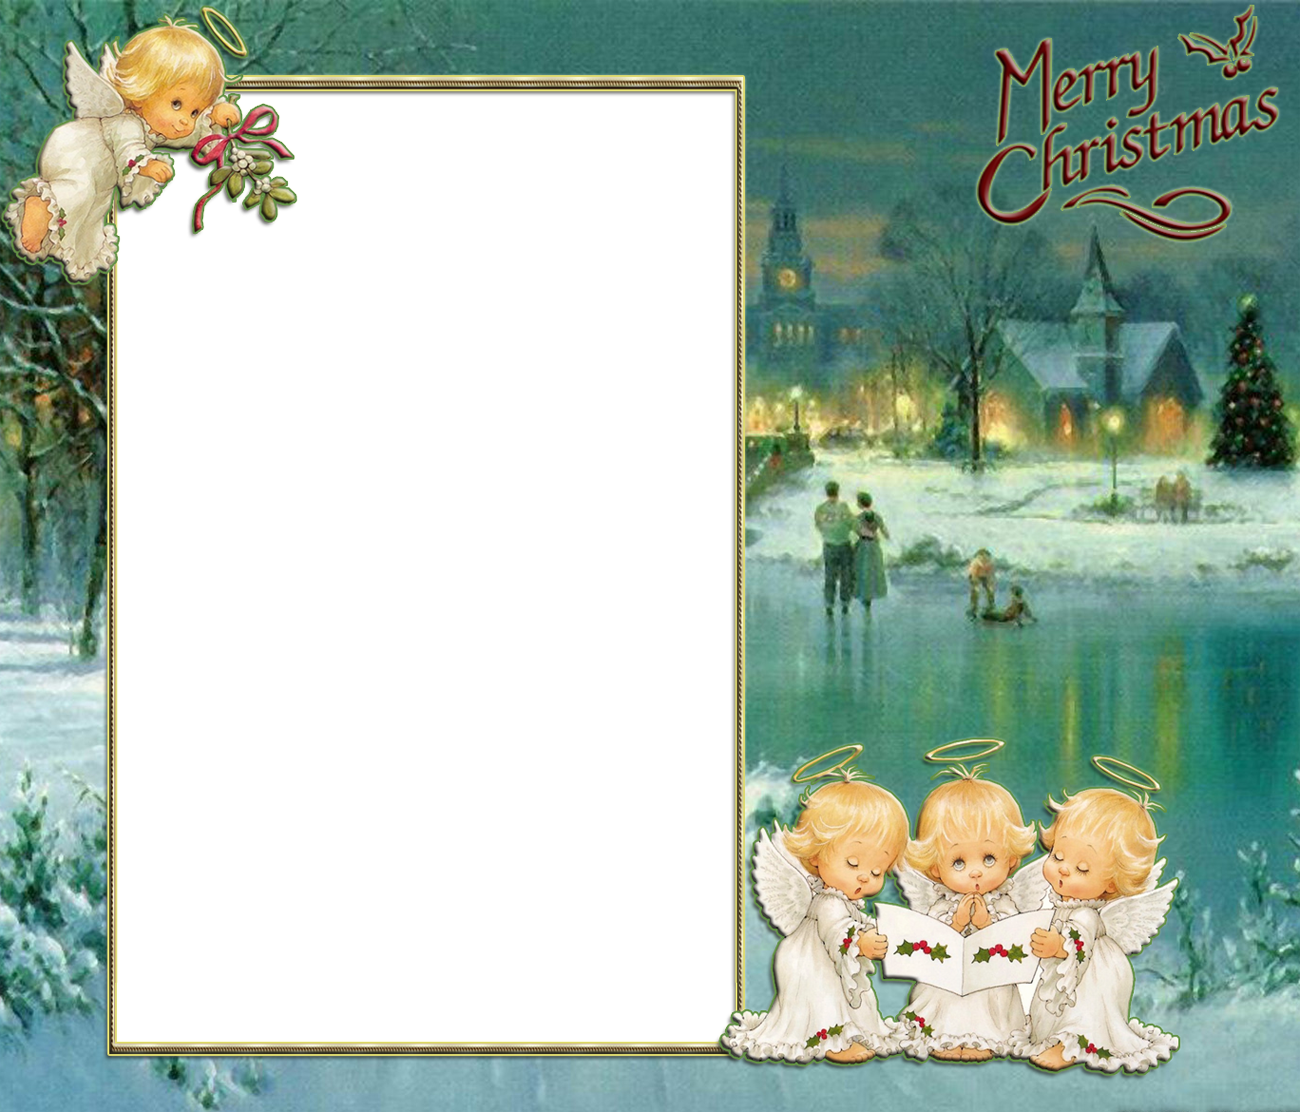 Angel Frames Wallpapers High Quality | Download Free